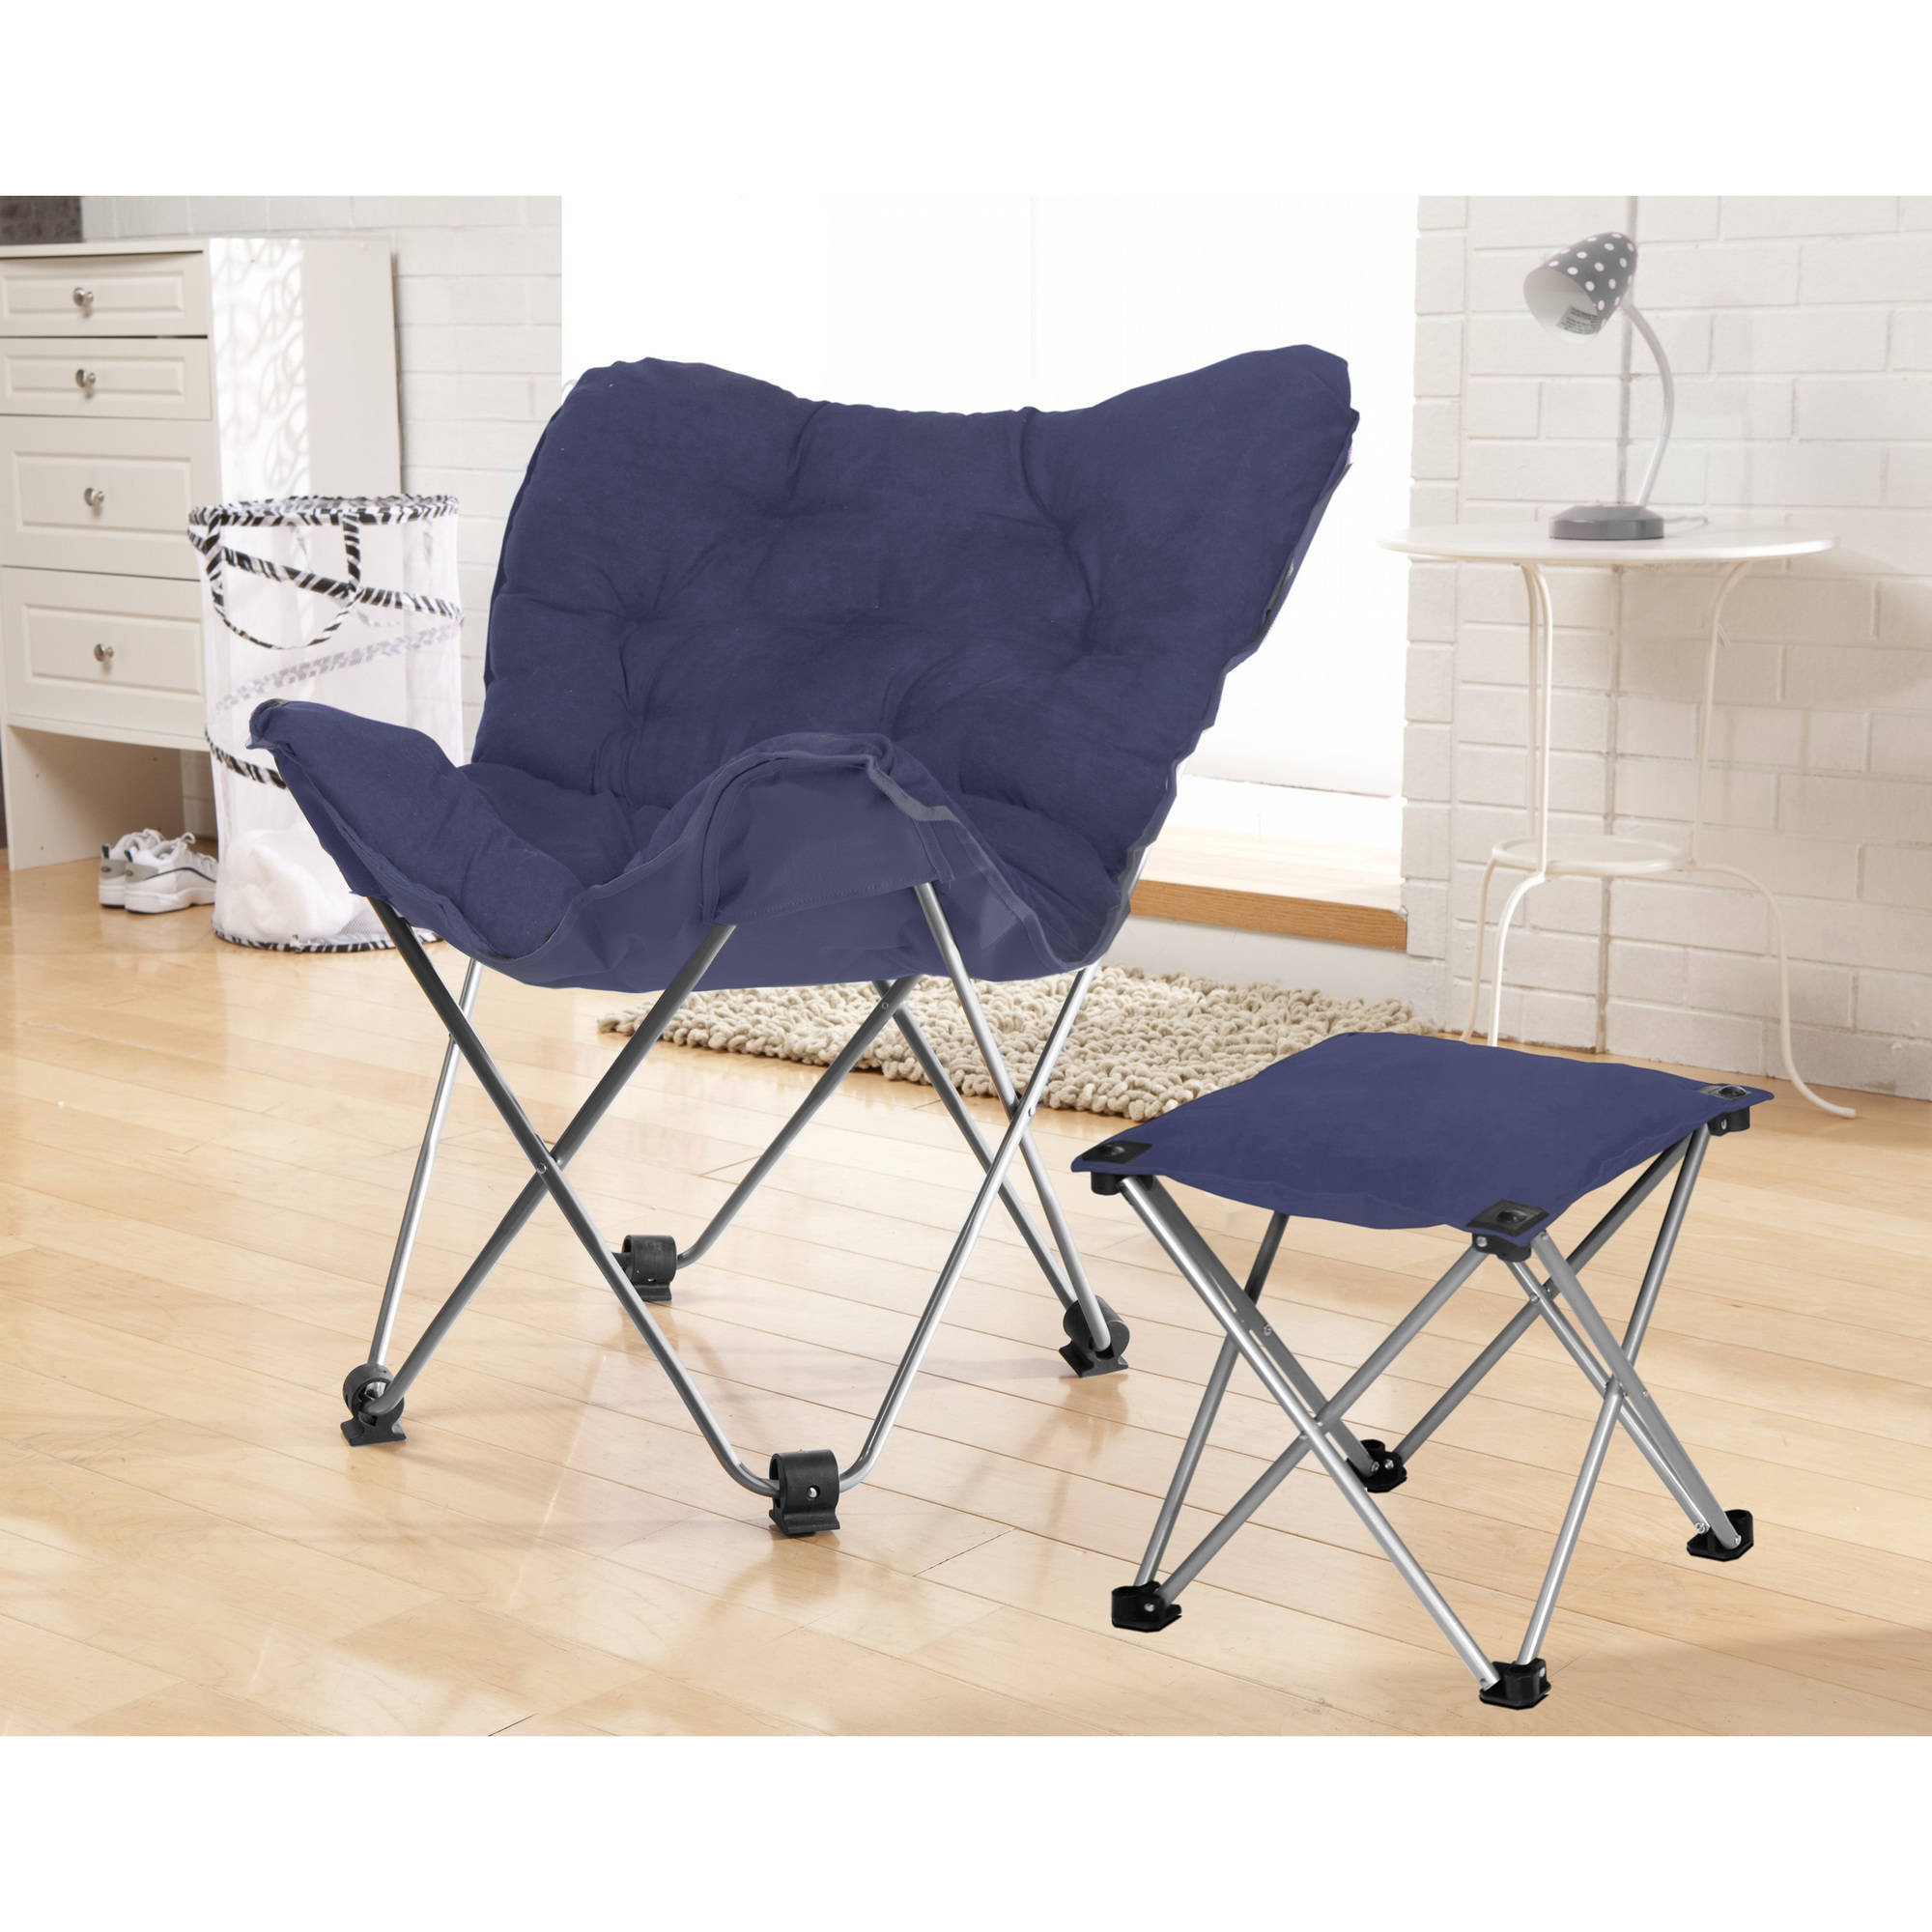 your zone butterfly chair with footrest, navy